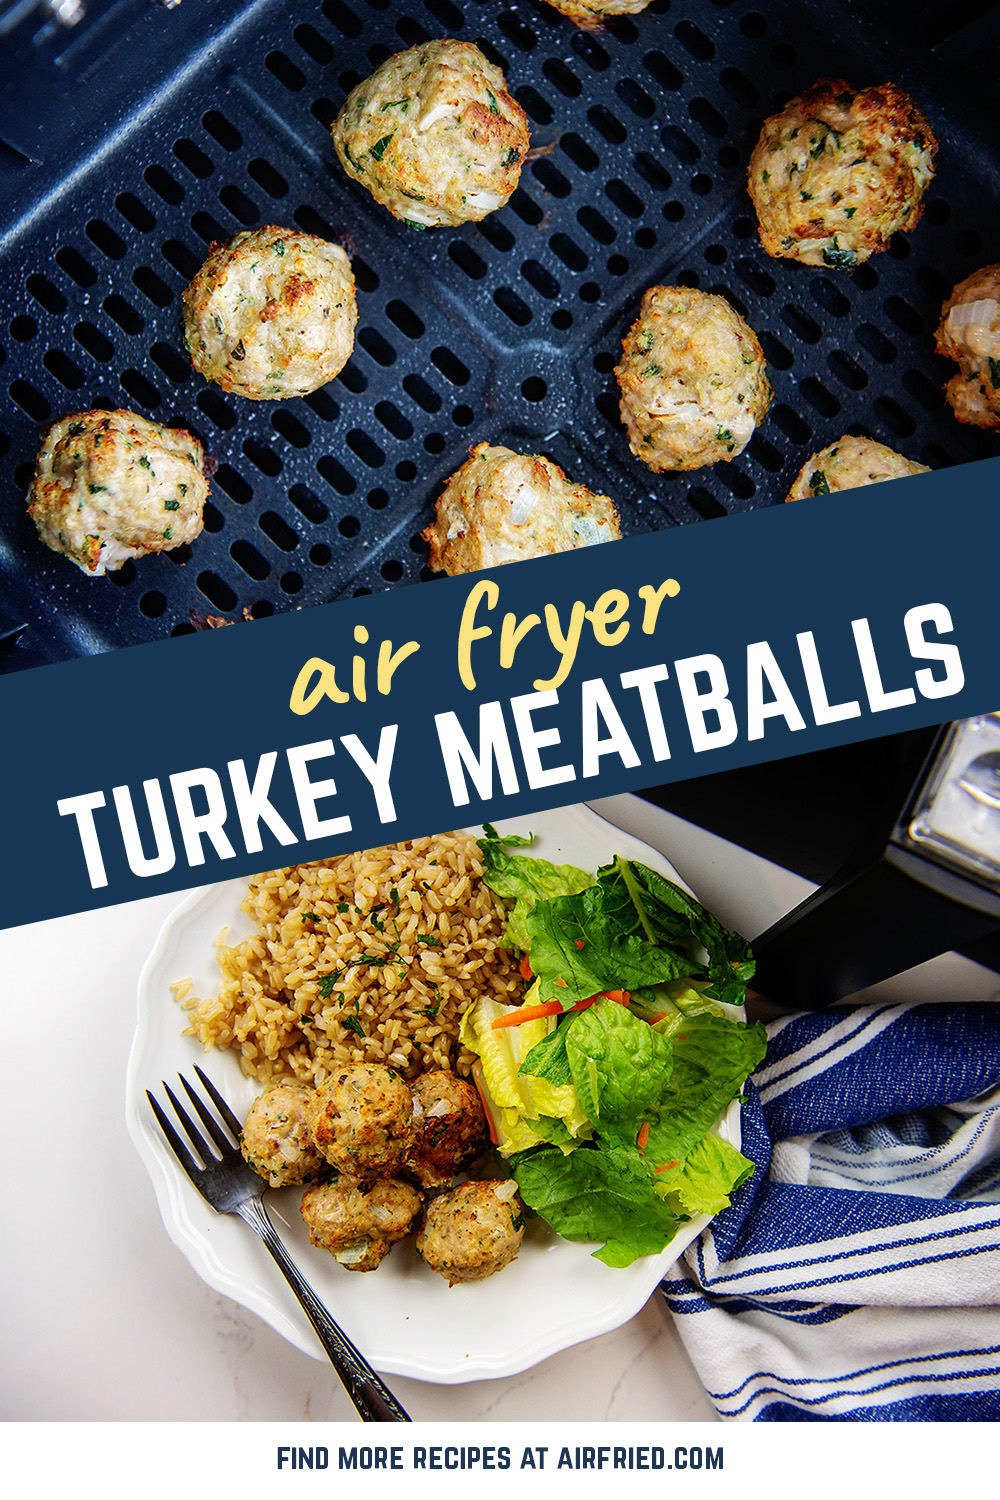 Air fryer turkey meatballs make for a simple lunch that is fantastic alongside many different side dishes.